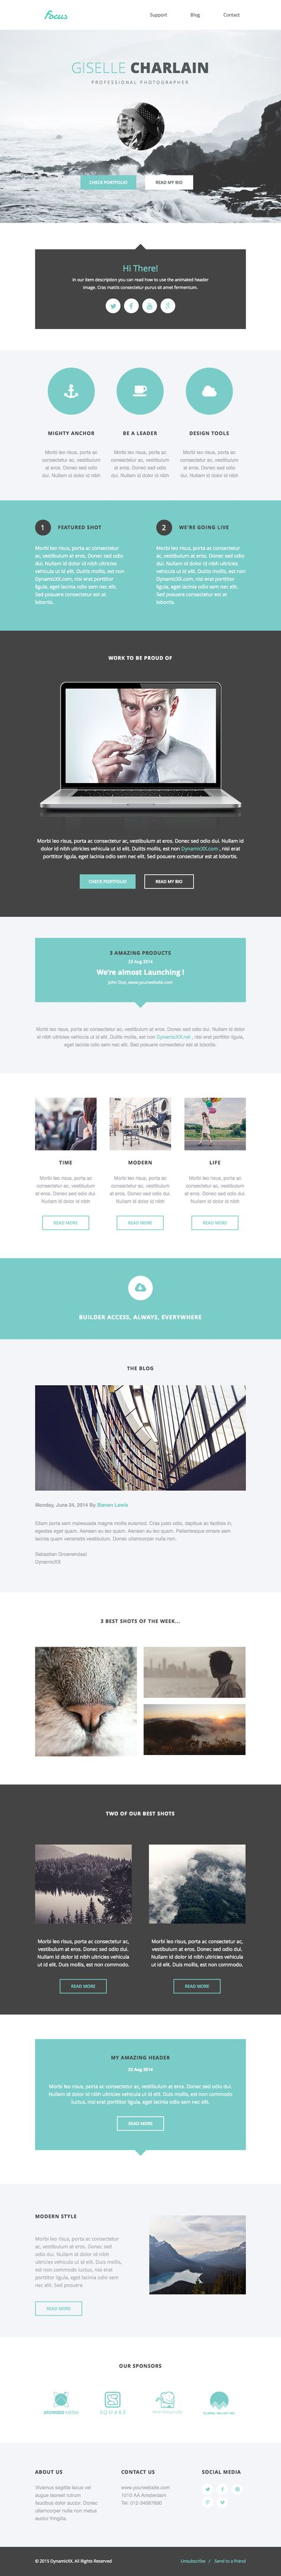 Focus - Responsive Email + Online Template Builder by DynamicXX